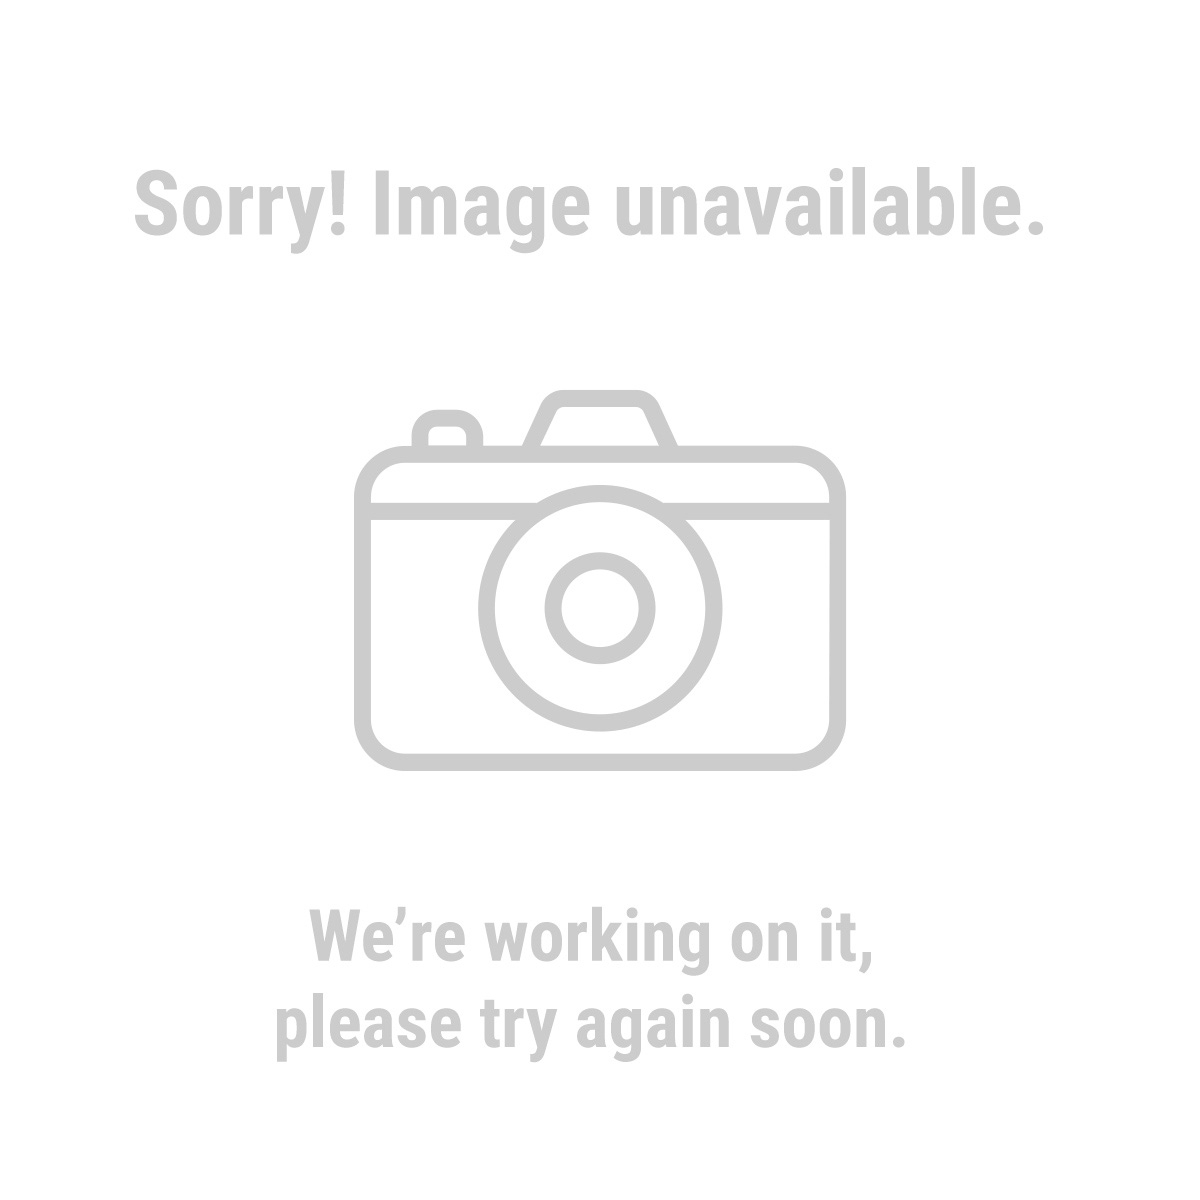 Central Pneumatic 69716 5 Gallon Portable Air Tank